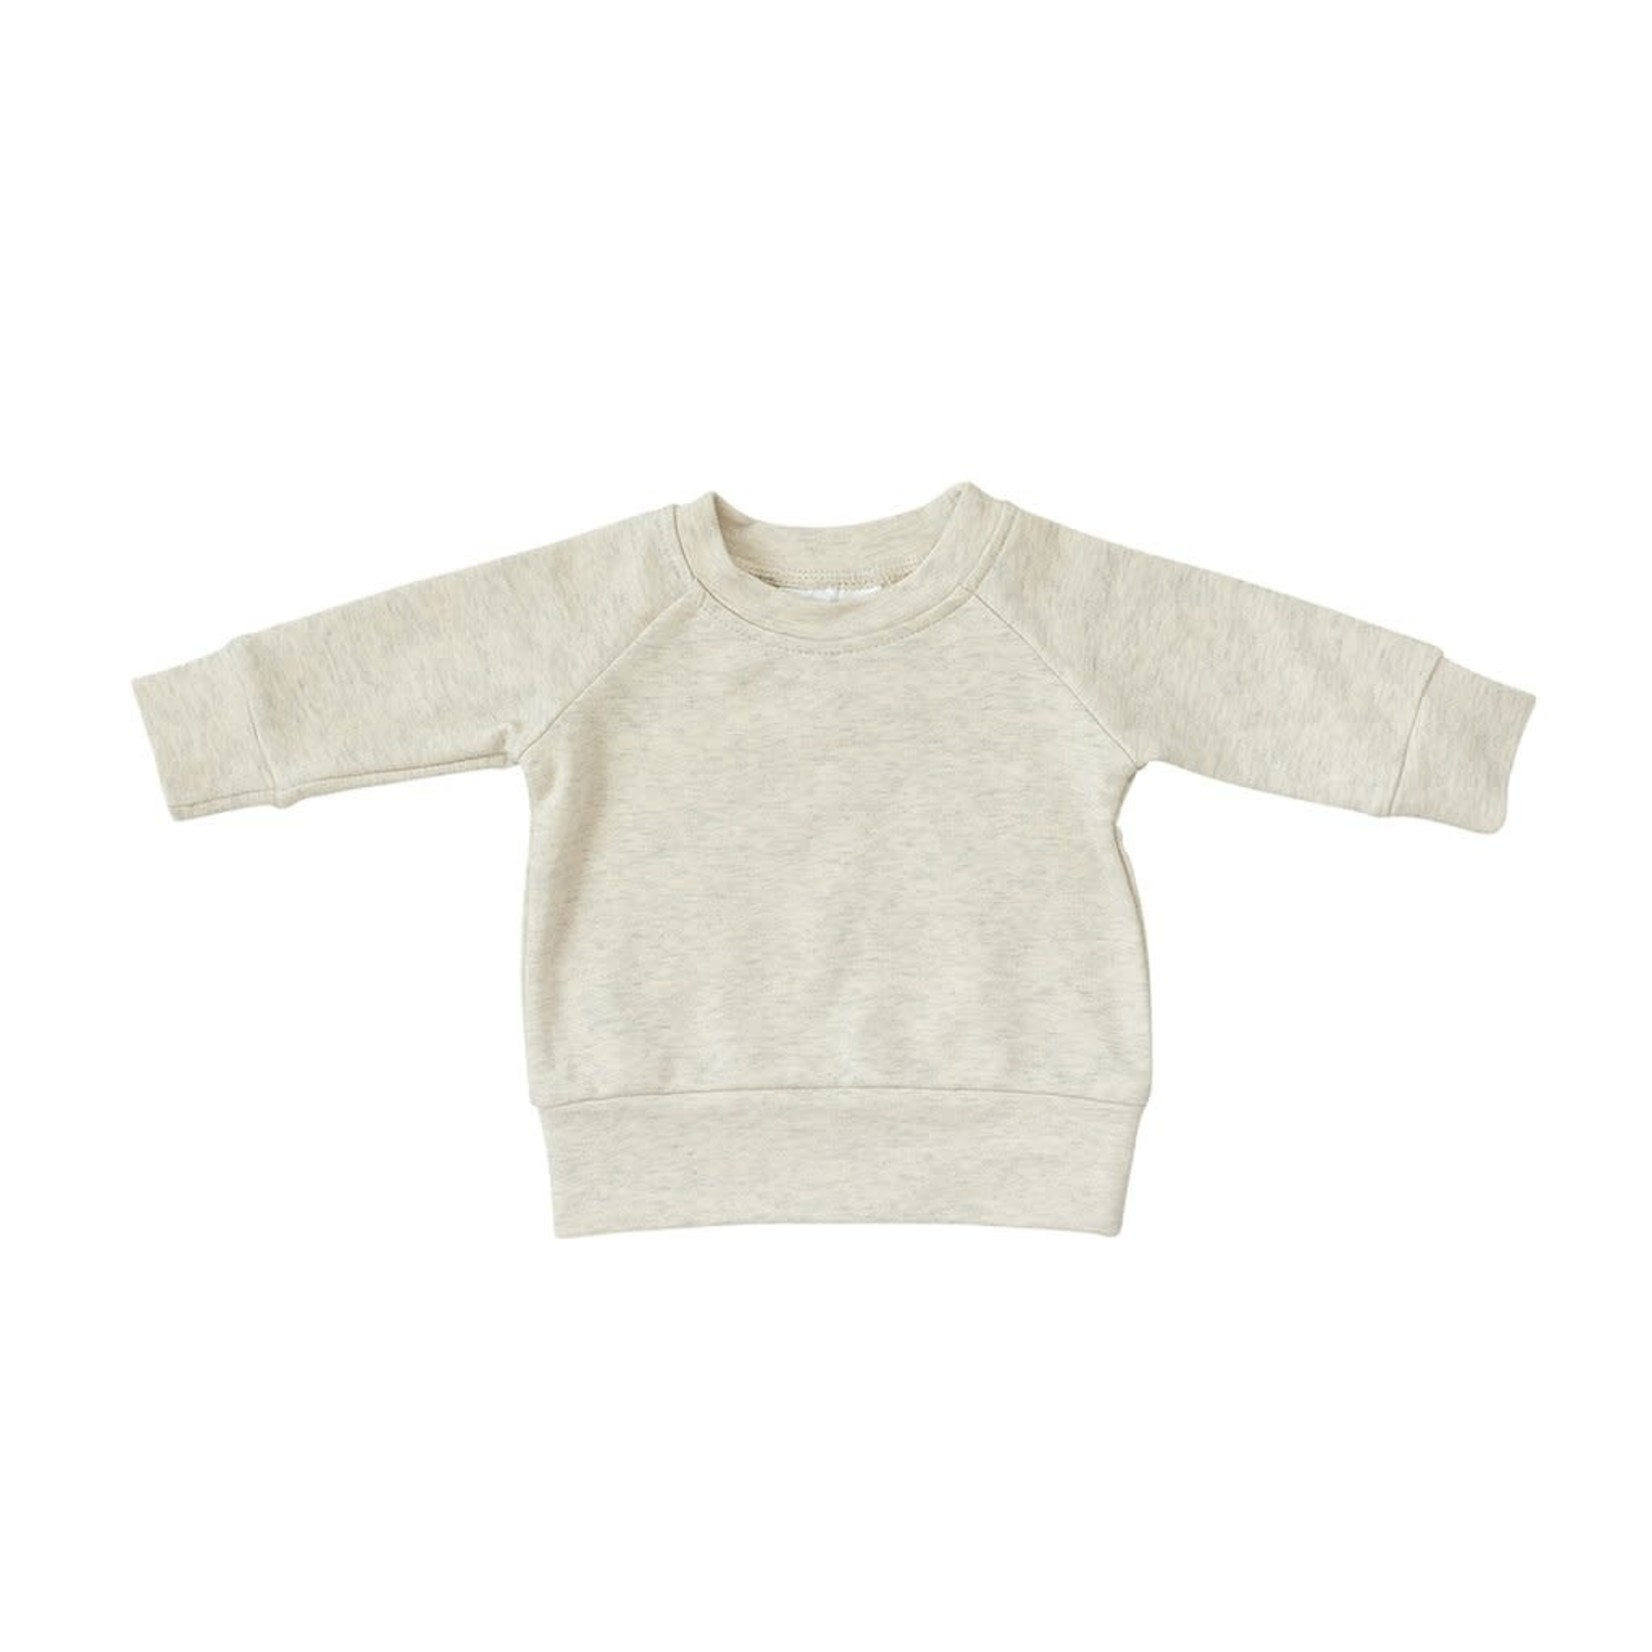 Mebie Baby French Terry Crew Neck - Heather Oatmeal